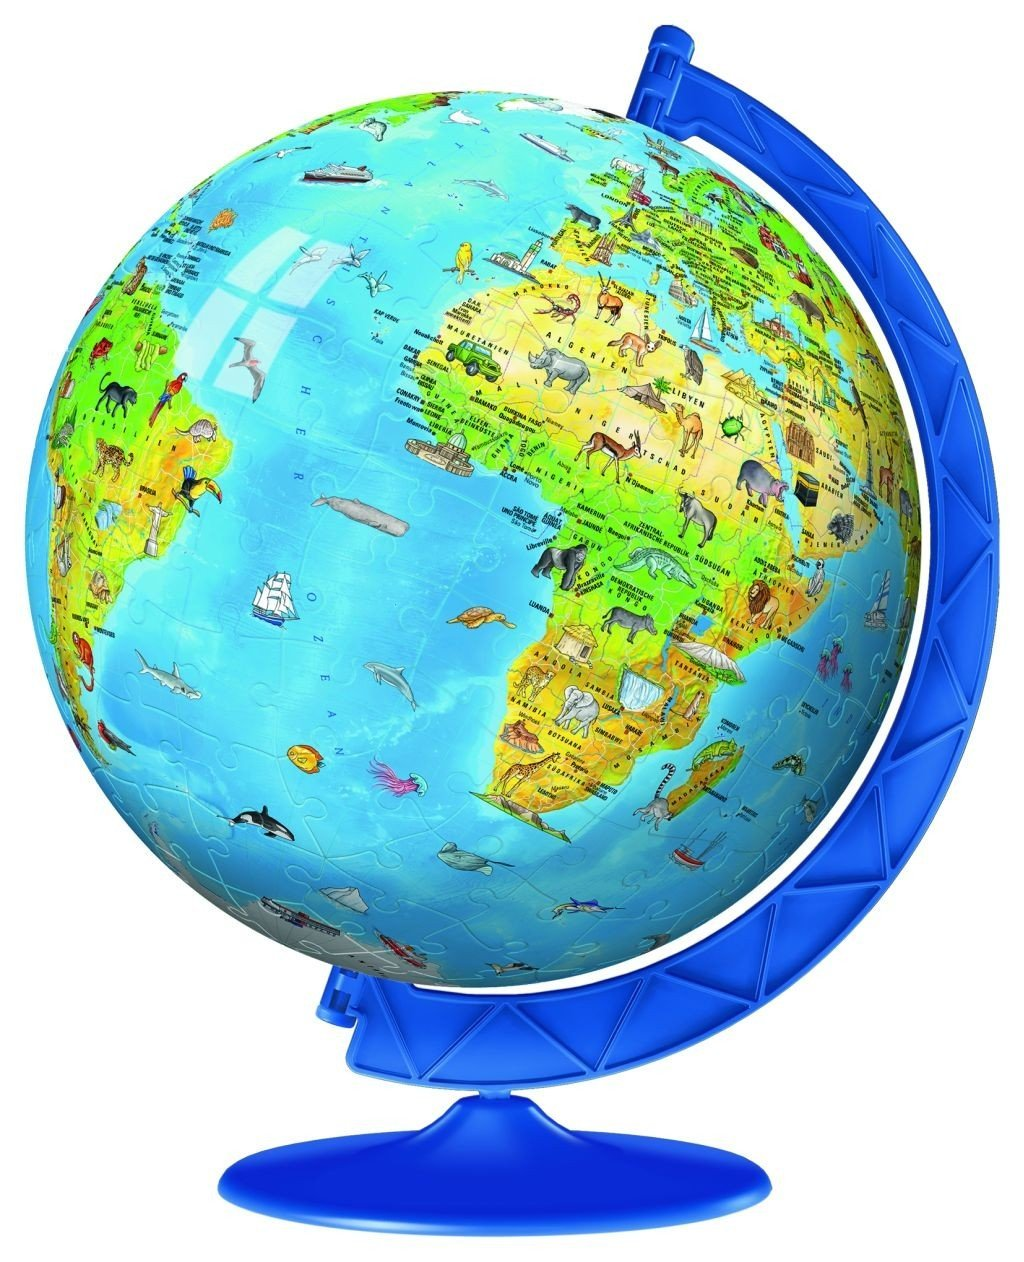 3D Jigsaw Puzzle - World Map in German Ravensburger-12337 ...